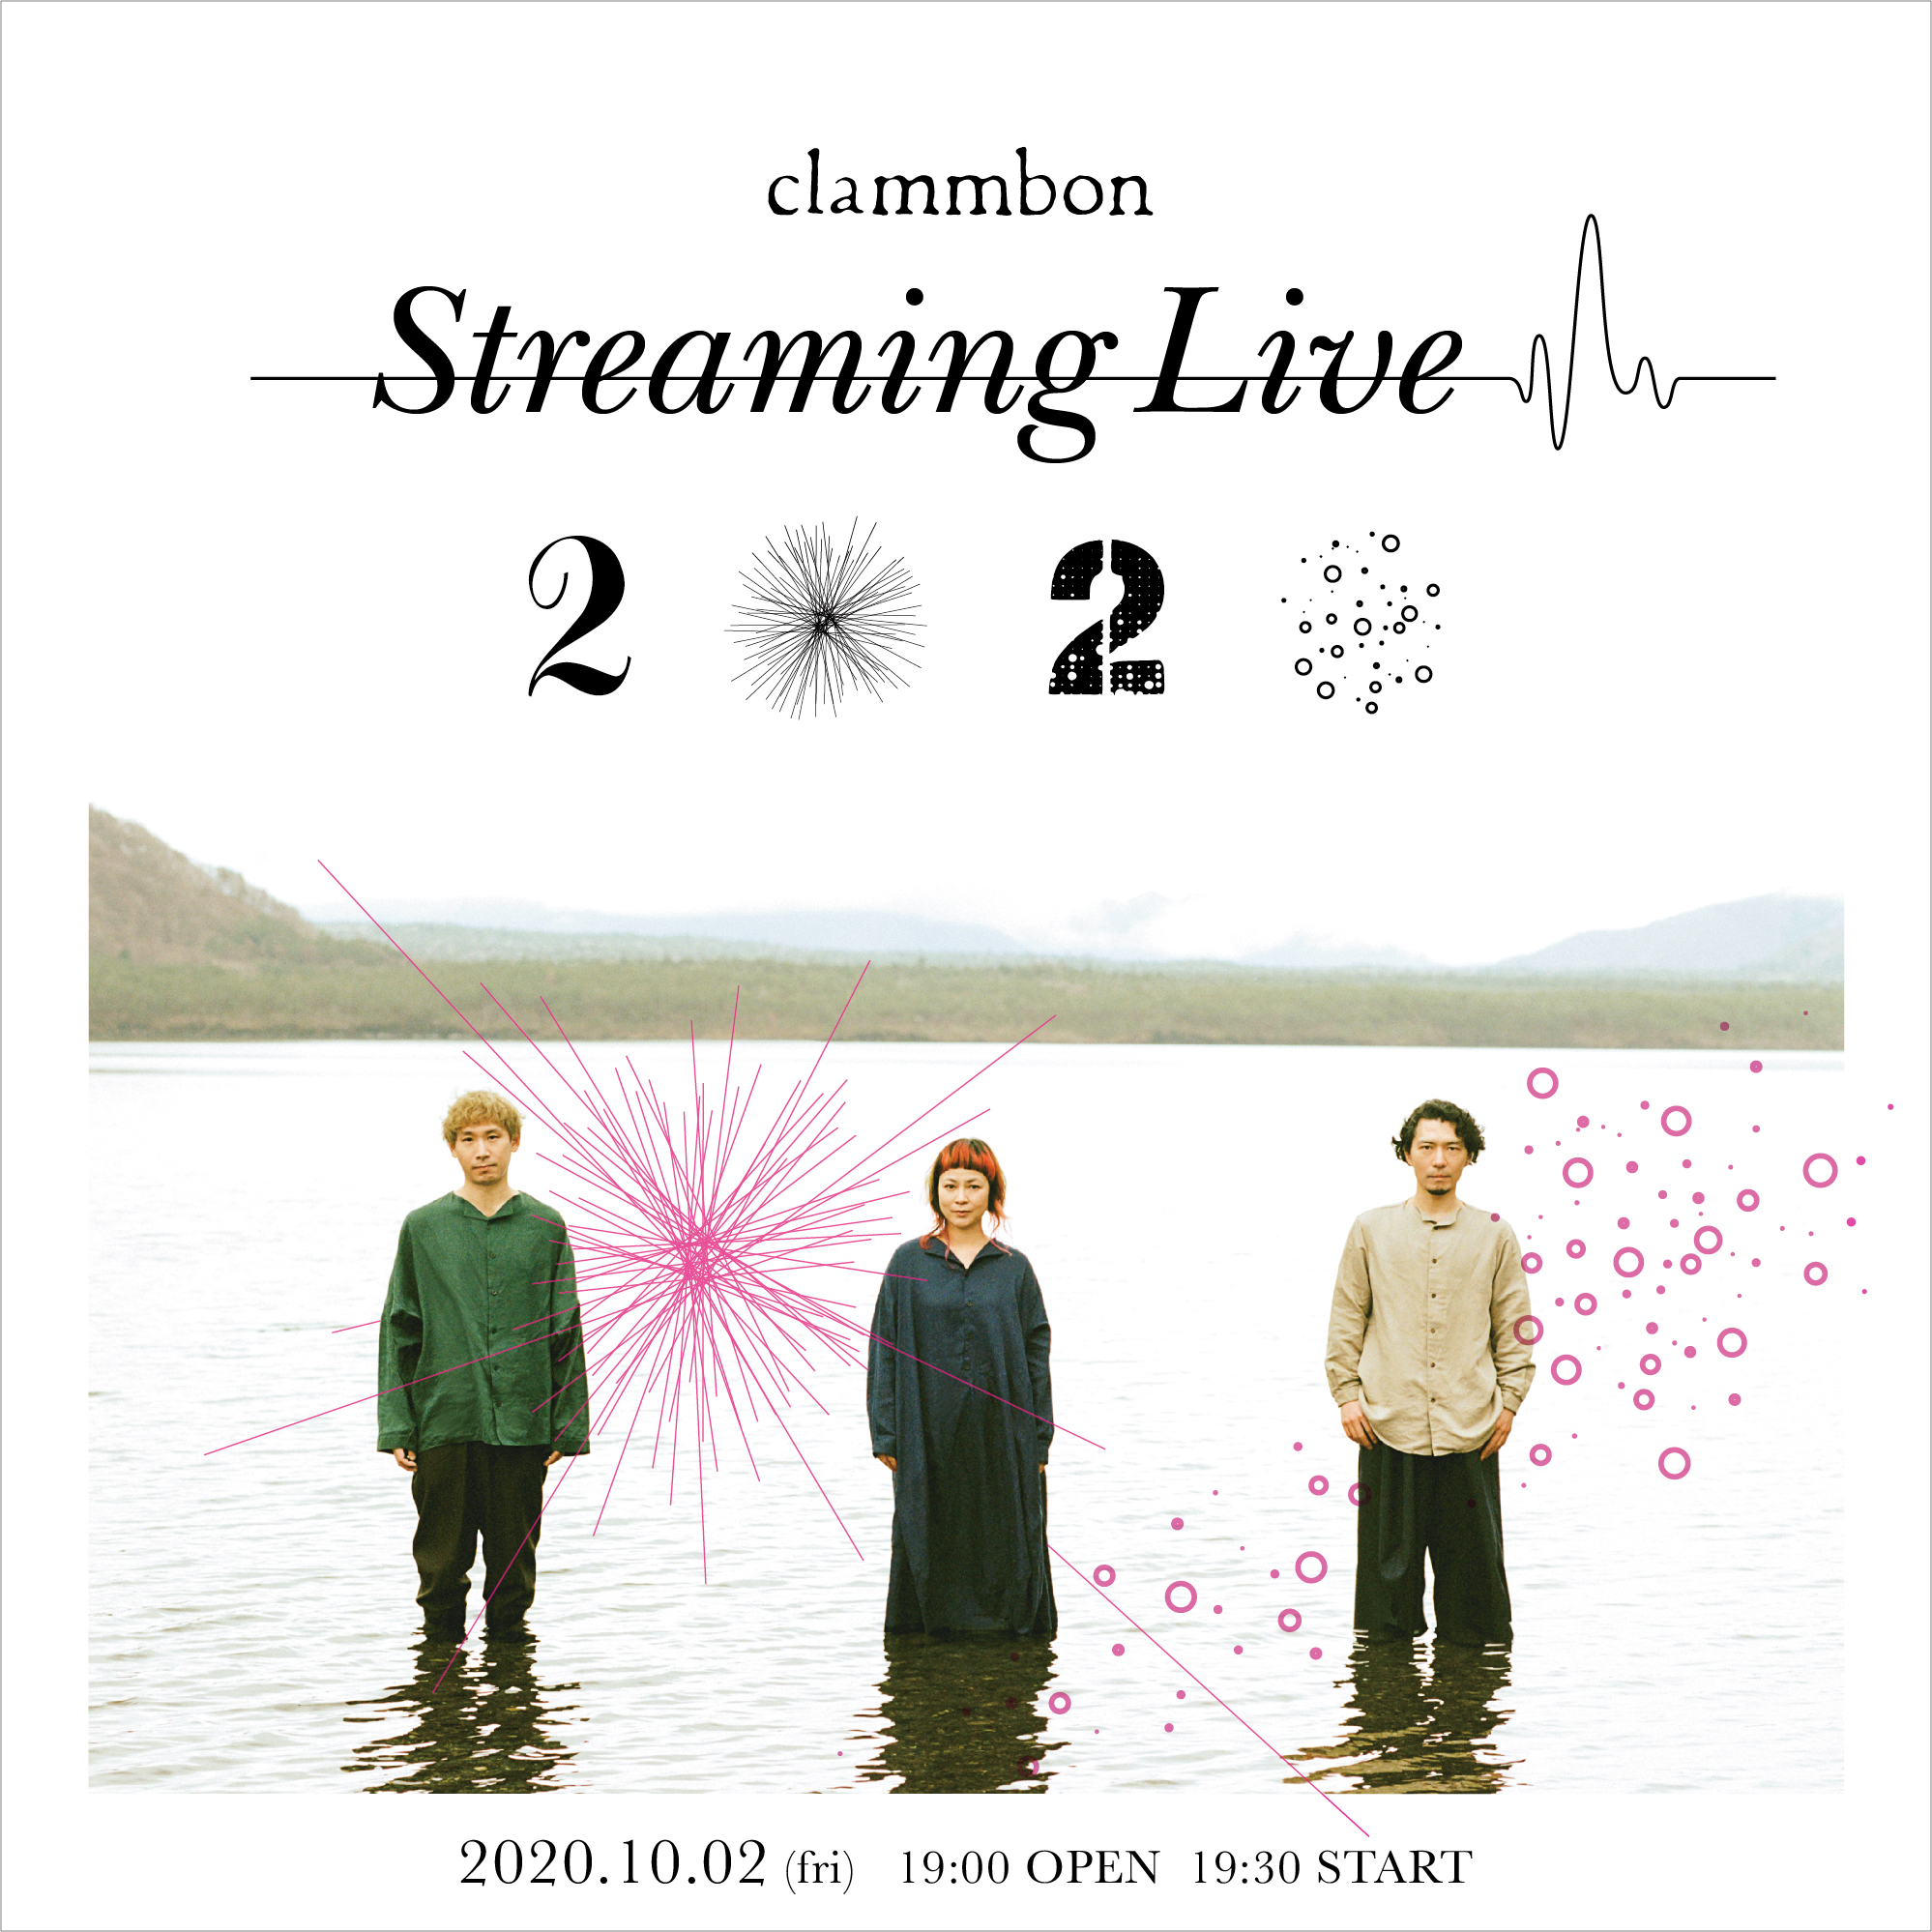 2020_clammbon_StreamingLive.jpg